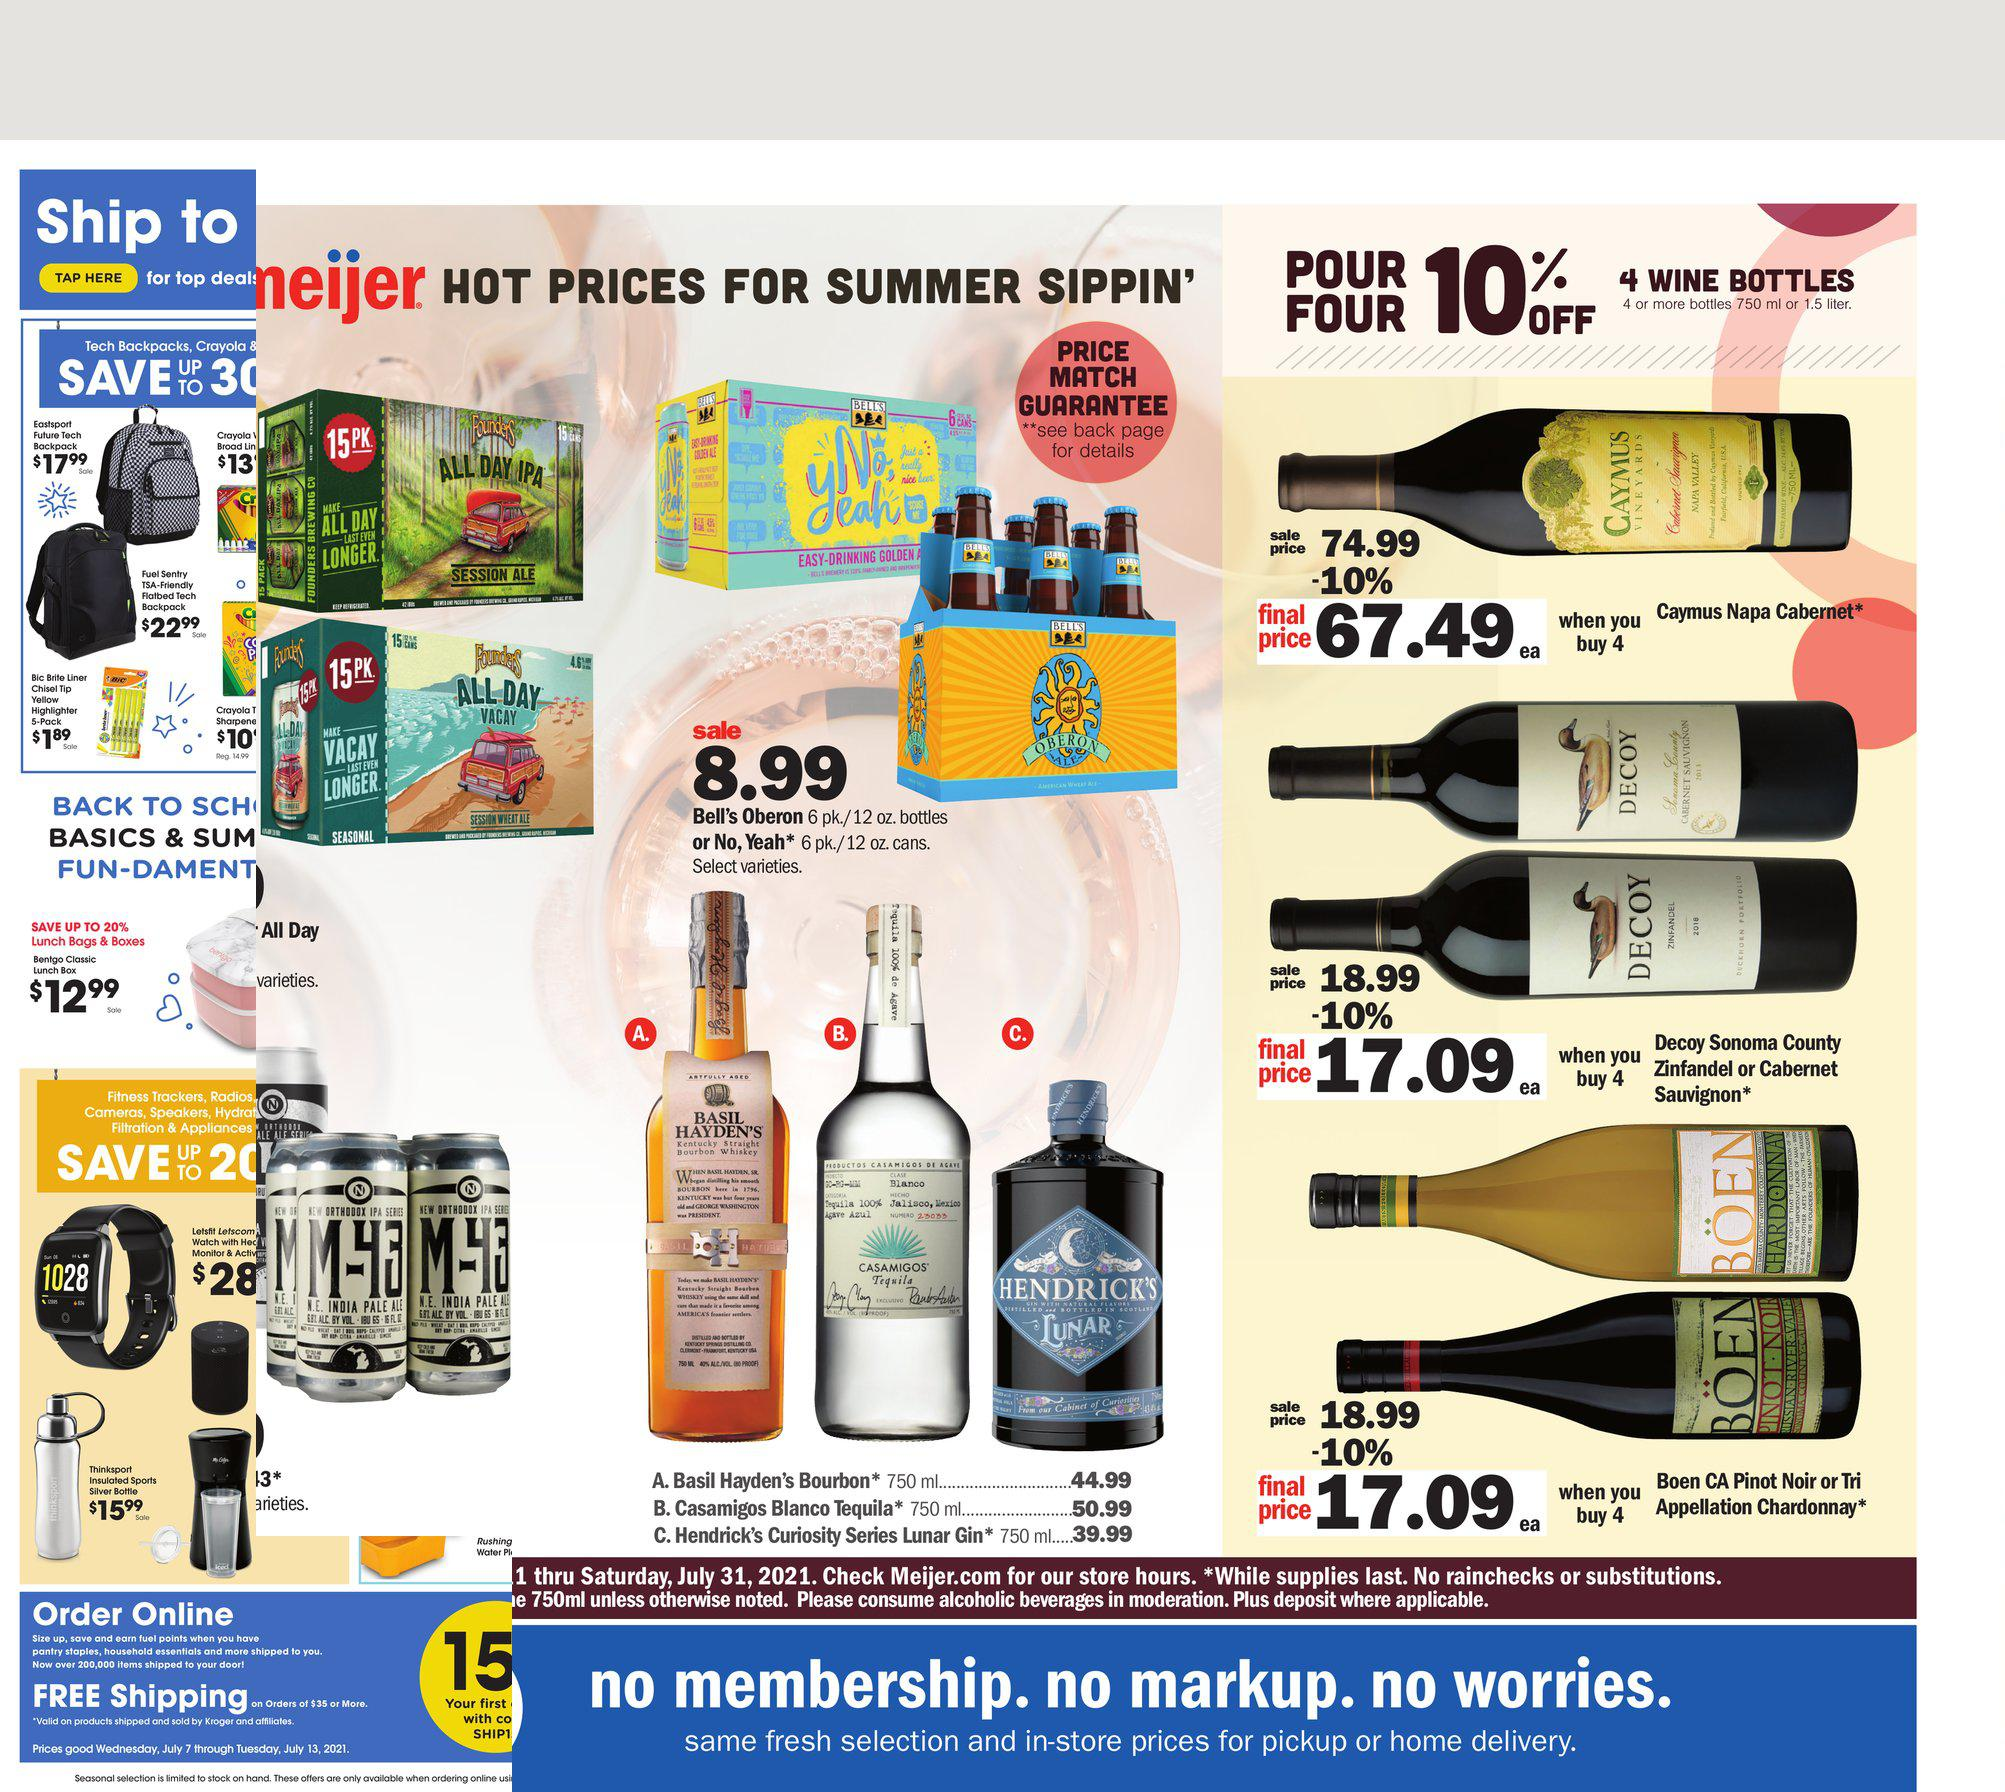 11.07.2021 Meijer ad 1. page